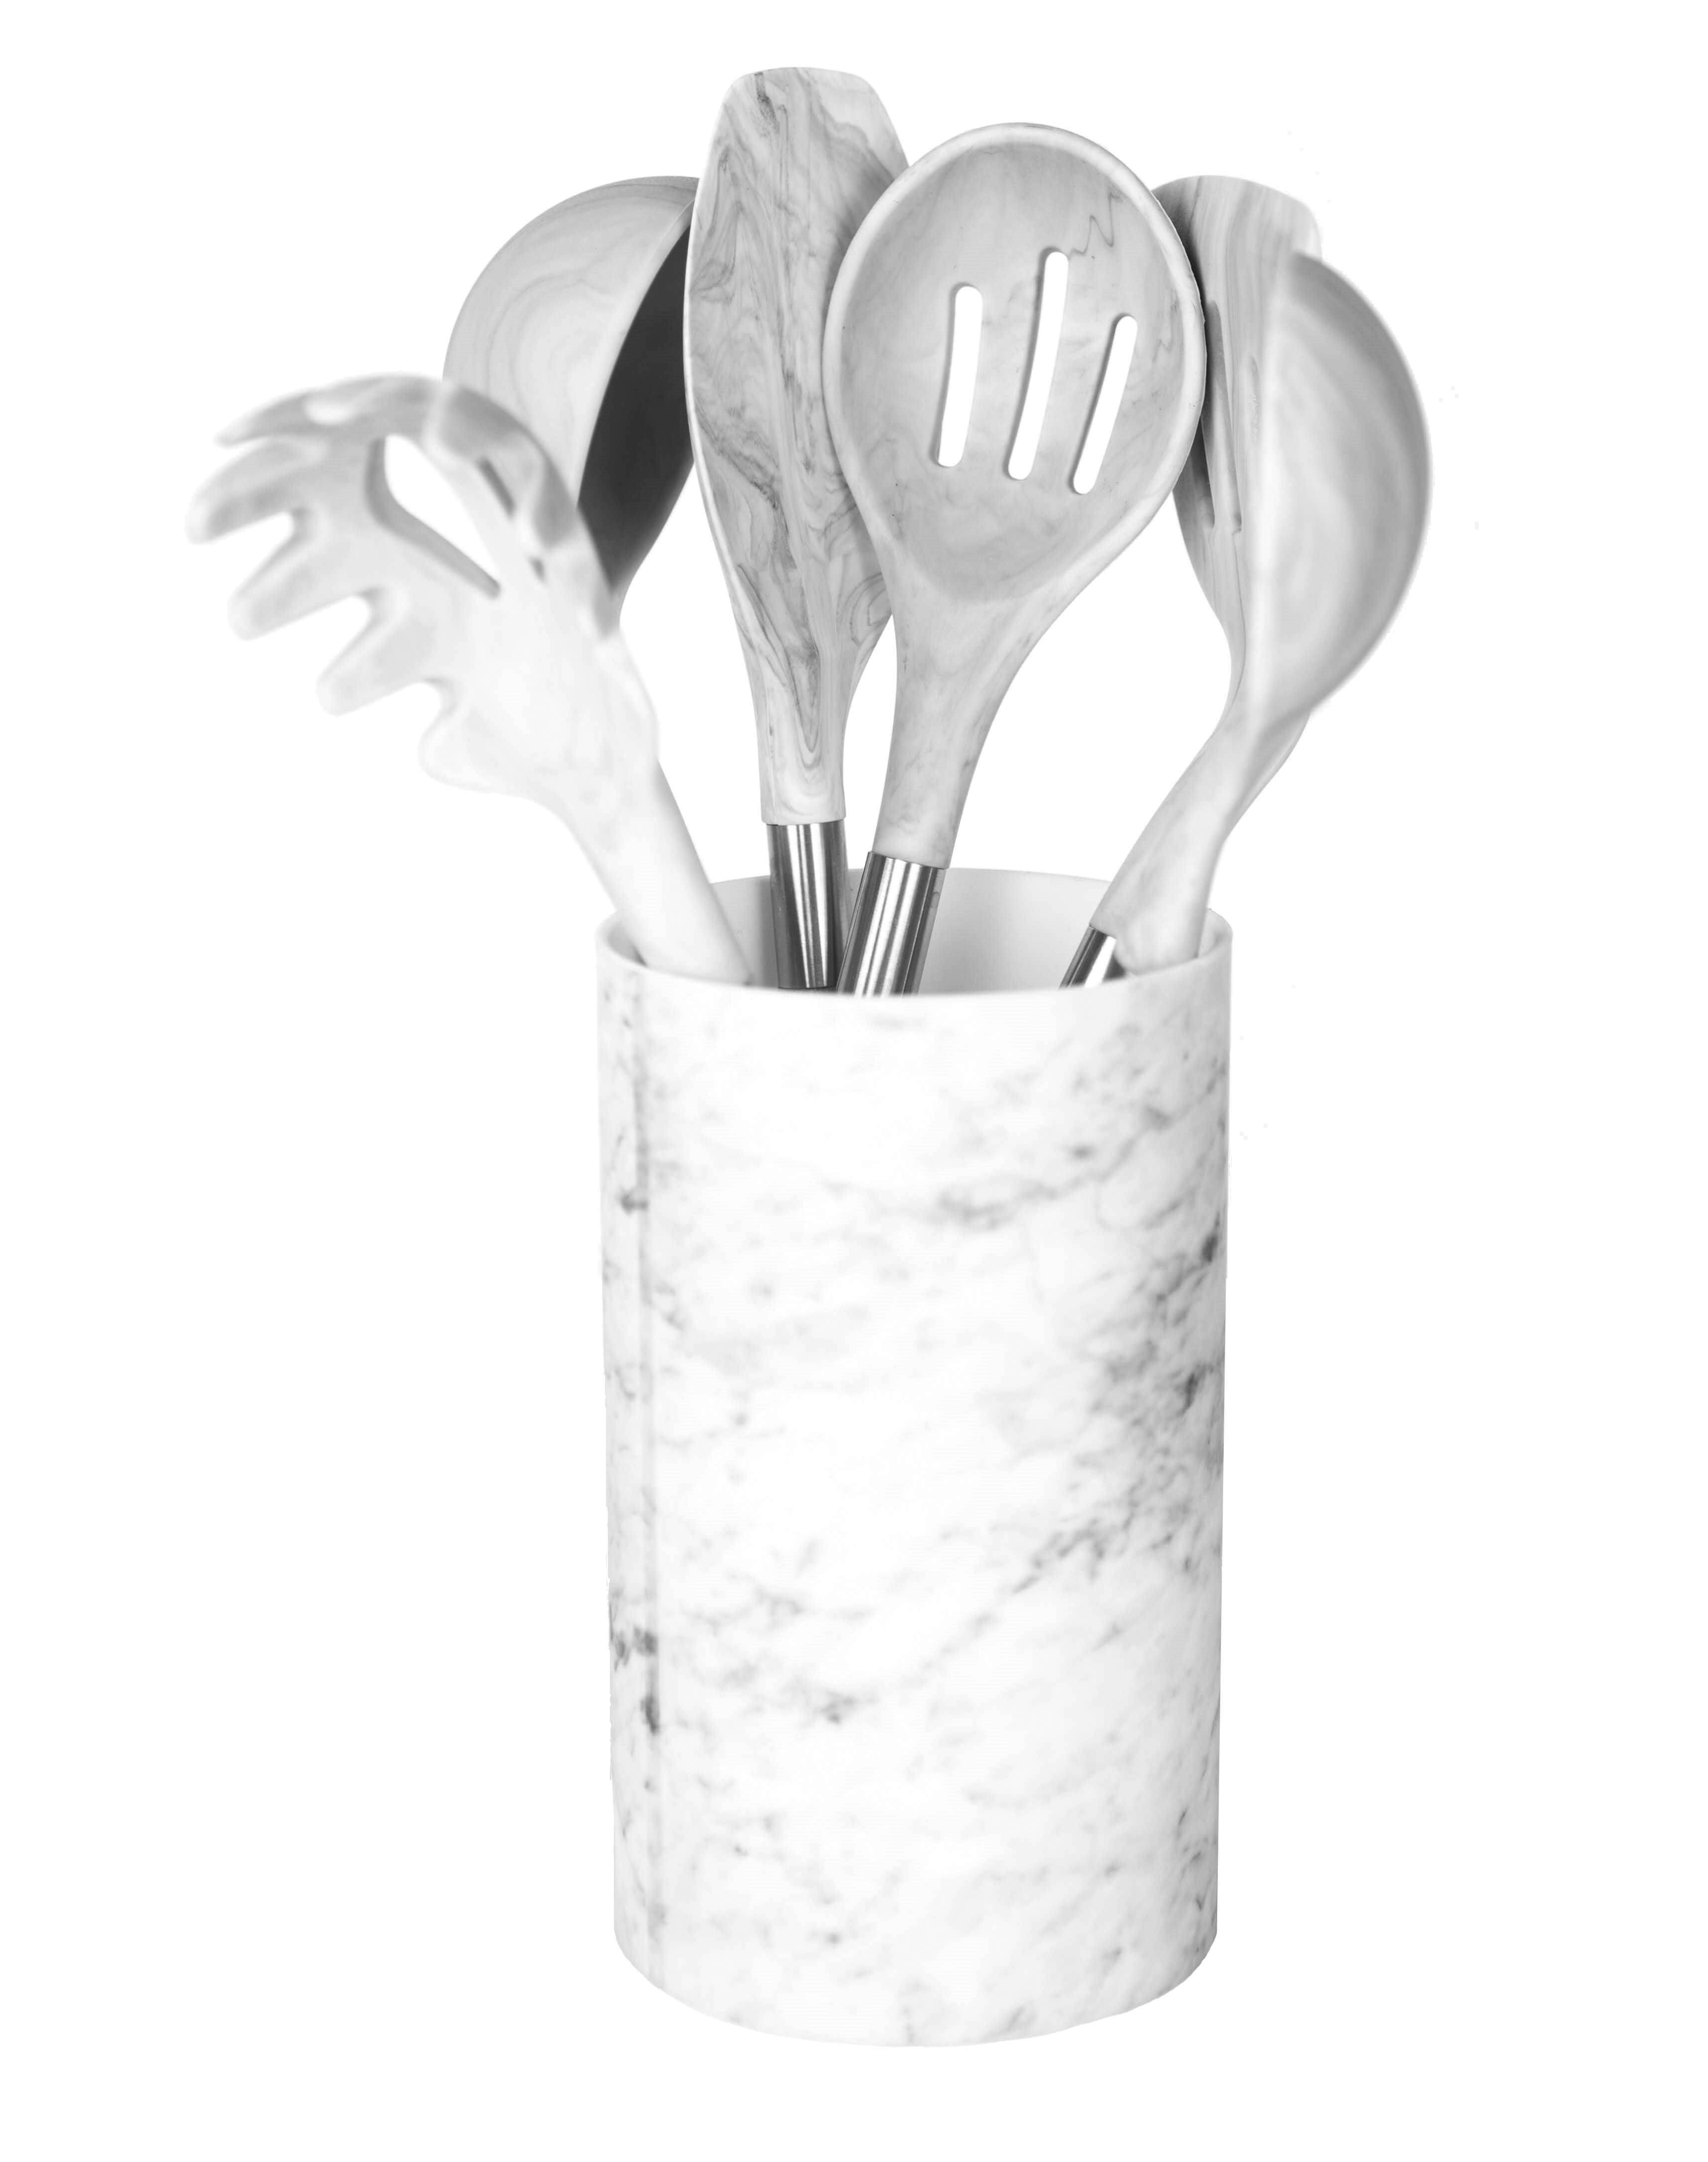 BRAND NEW! Marble Silicone Kitchen Utensil Set by Integrity ...